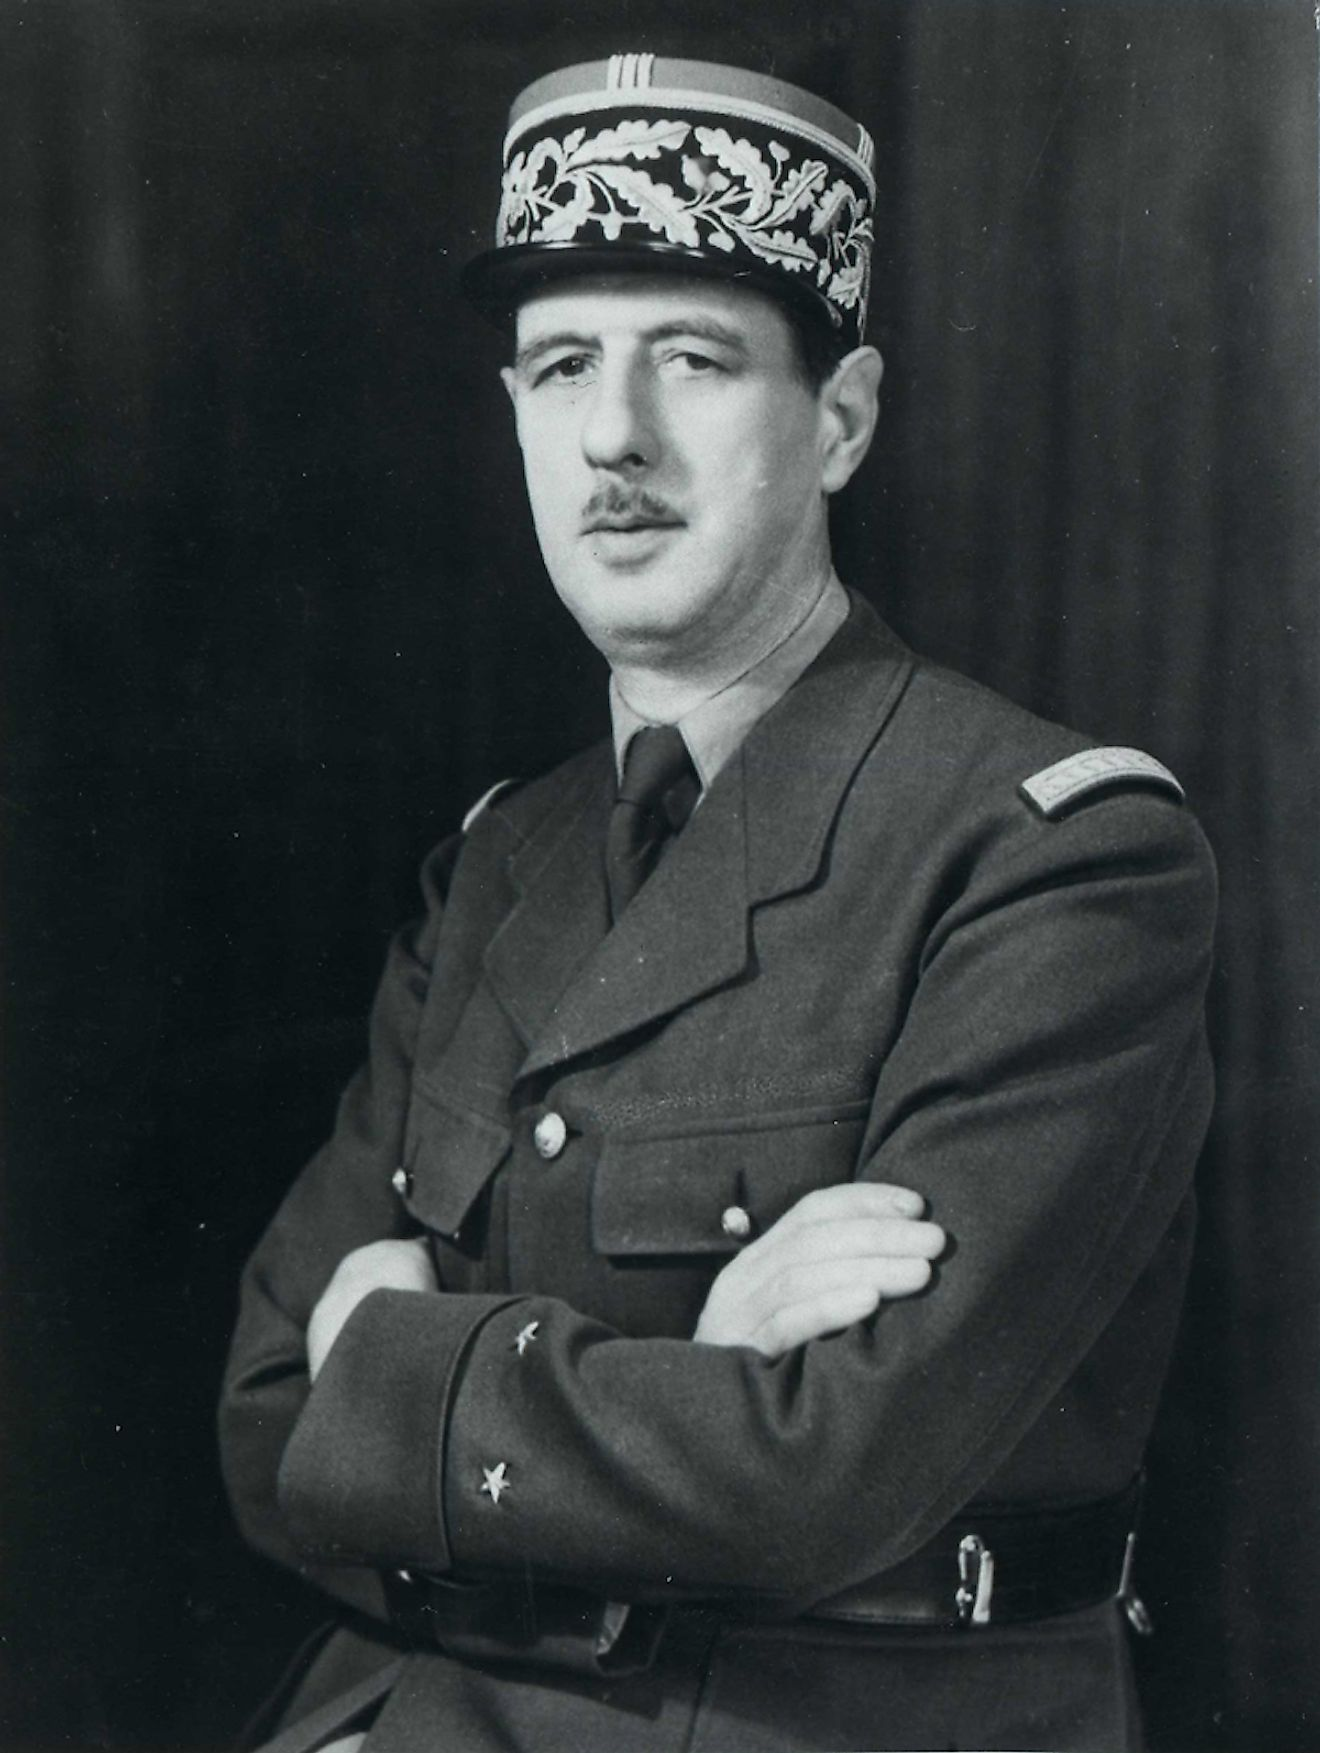 Charles De Gaulle. Image credit: The National Archives UK